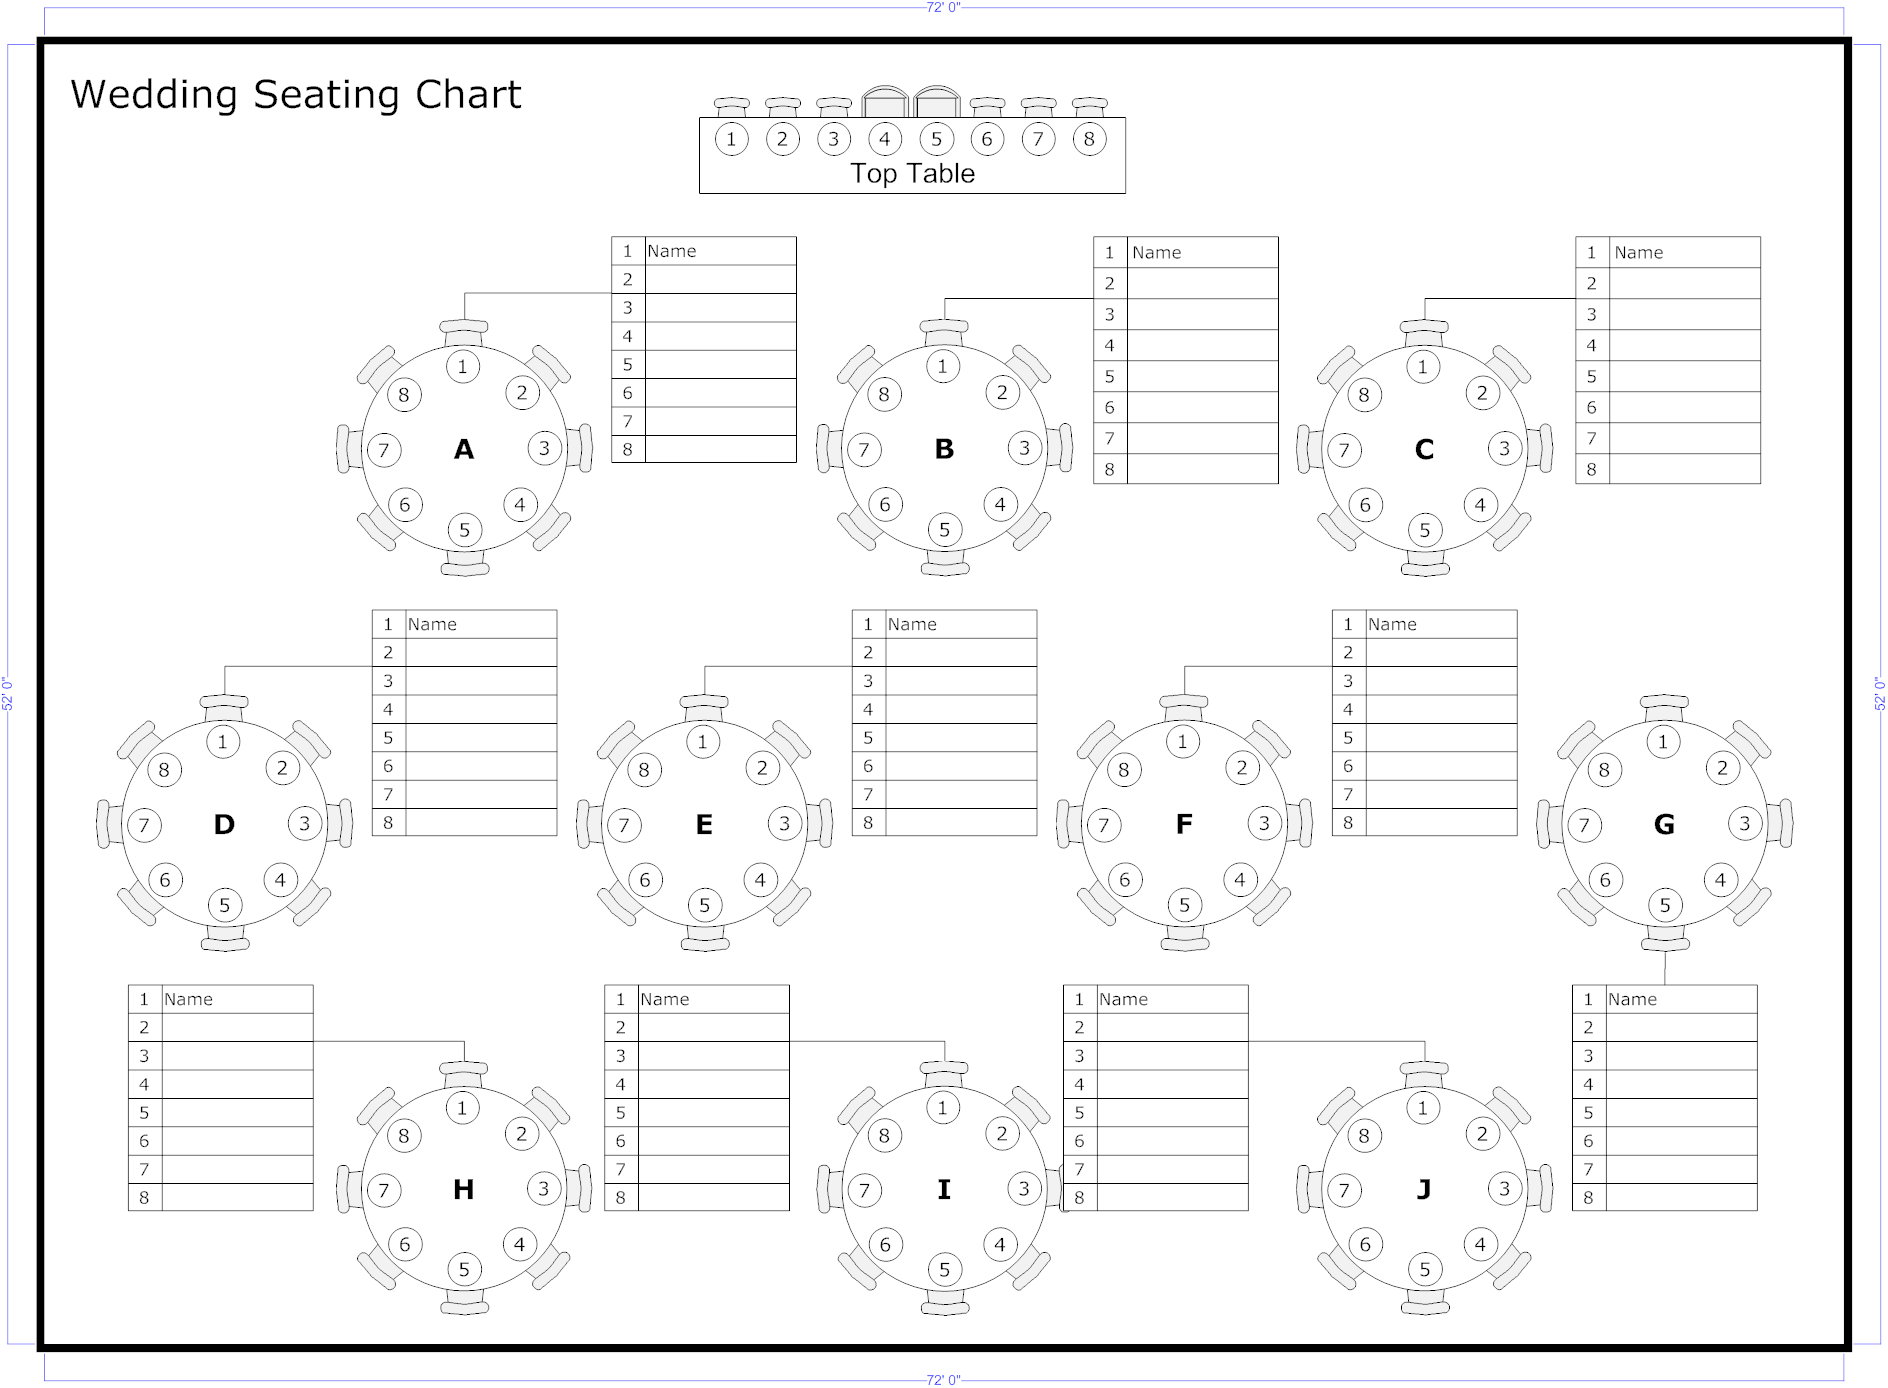 Reception Seating Charts 101 | Wedding Album Photos In 2019 Throughout Wedding Seating Chart Template Word